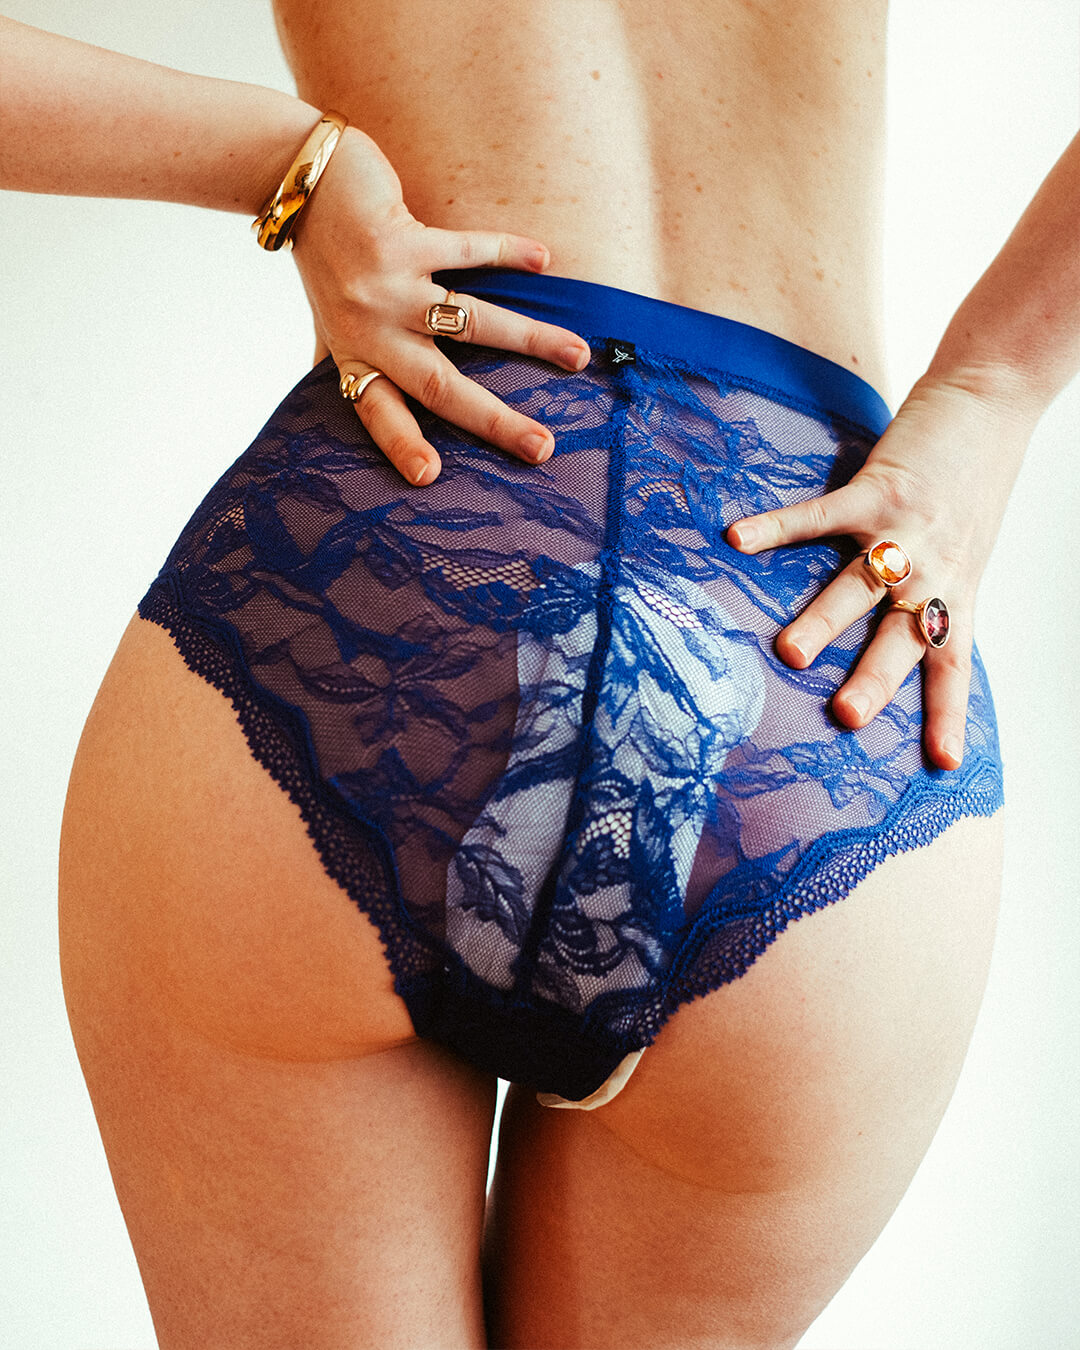 Social period Campaign by Monika Kozub - Women and period panties